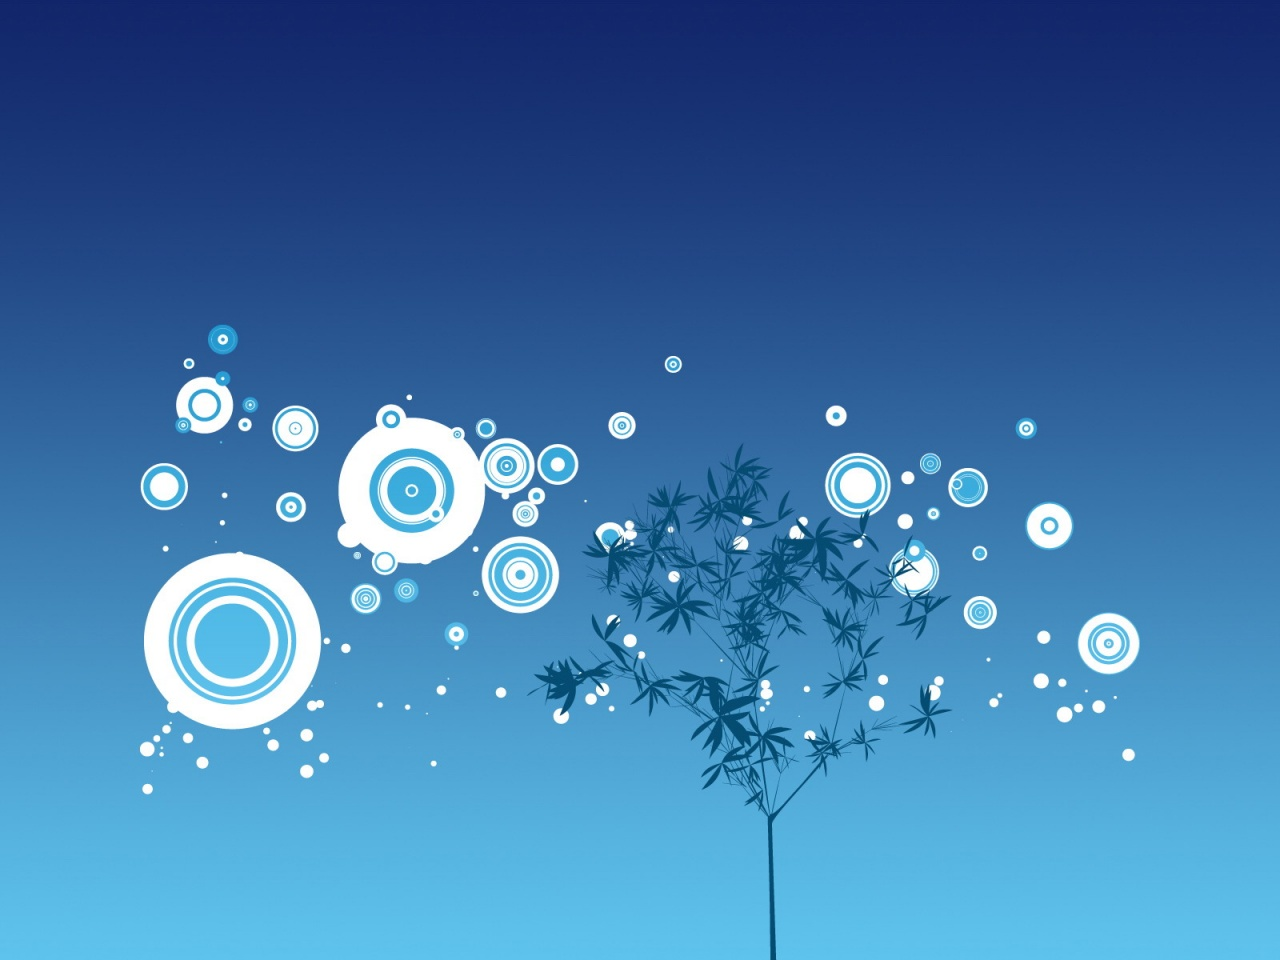 abstract wallpapers hd blue vector